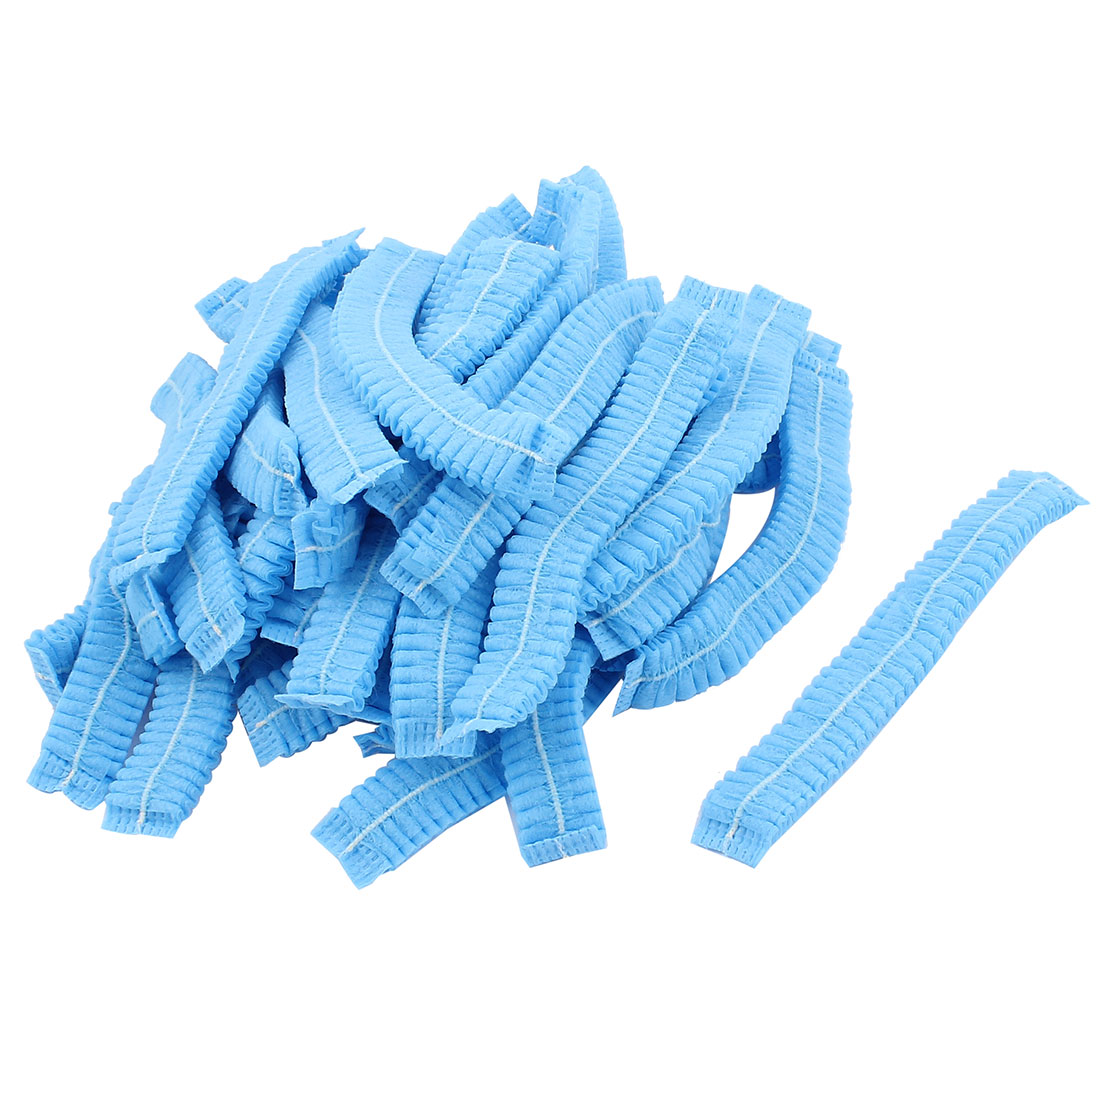 90pcs Blue Non-woven Elastic Band Disposable Bouffant Pleated Anti Dust Hats